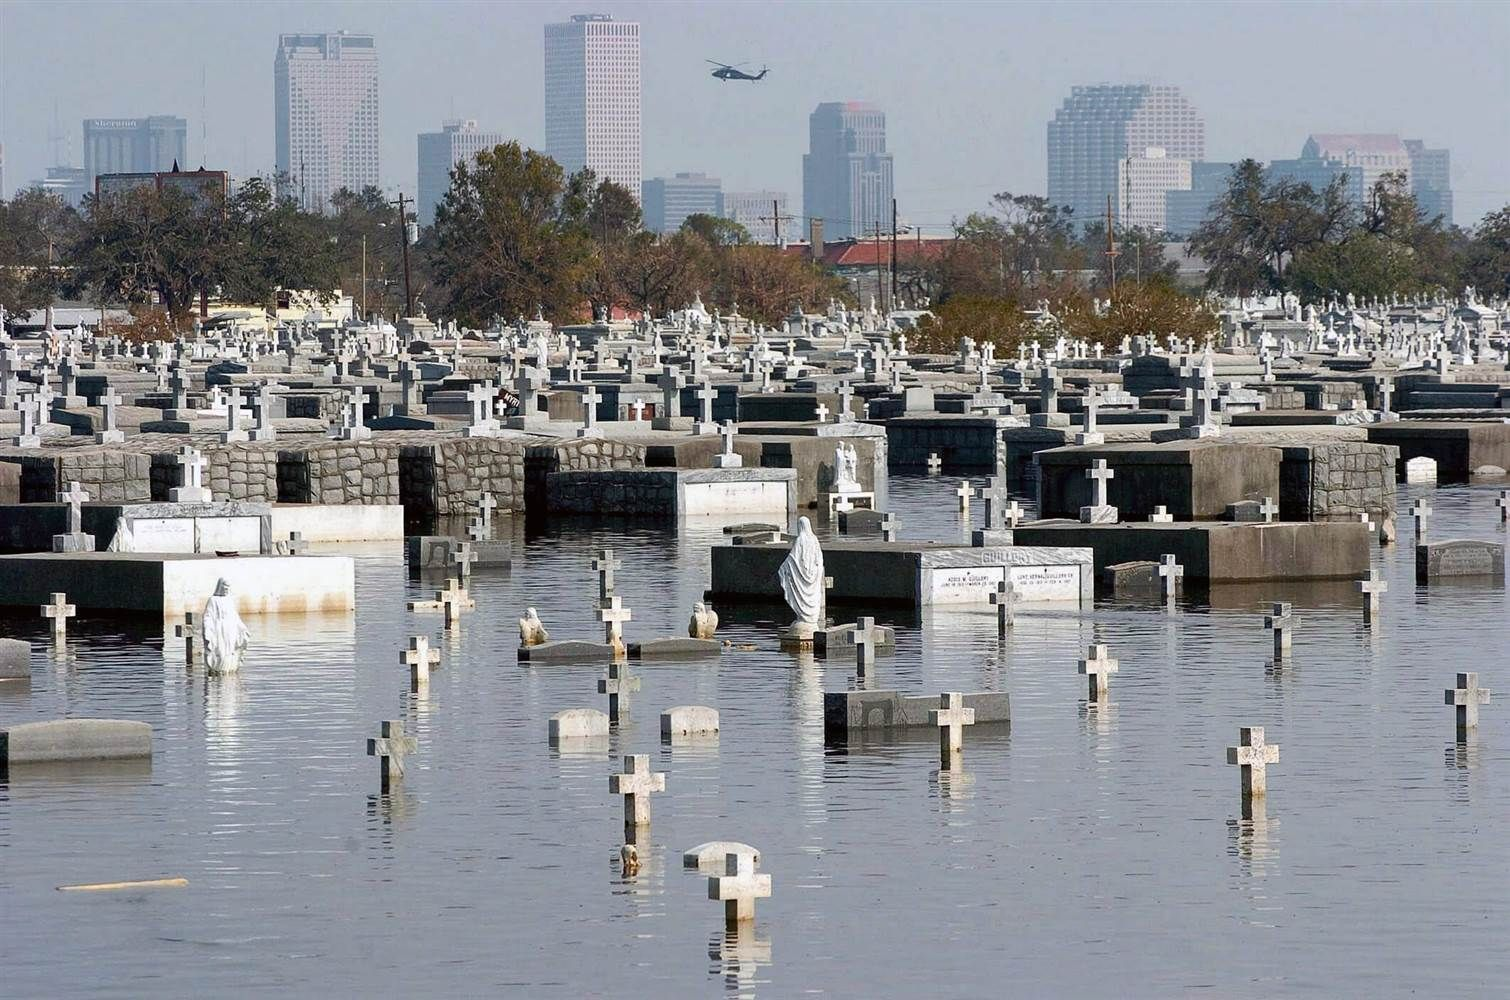 The Metairie Cemetery Flooded After Hurricane Katrina Hit New Orleans Description From Teles Metairie Cemetery Hurricane Katrina Hurricane Katrina New Orleans